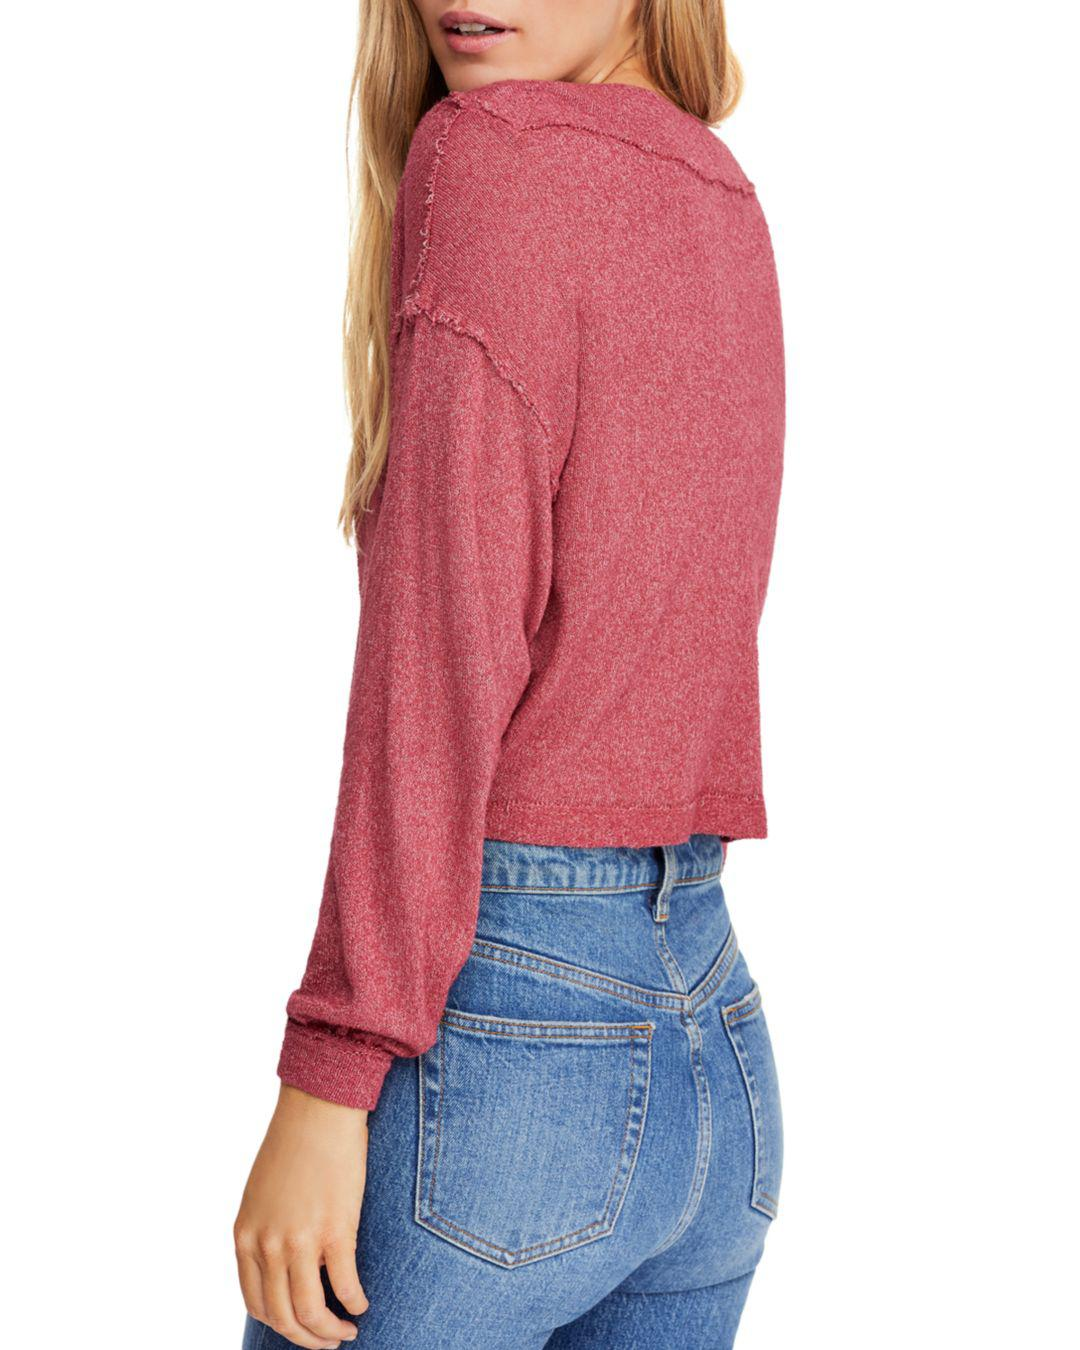 8c2ee342c11 Free People Stay With Me Boat-neck Top in Red - Lyst